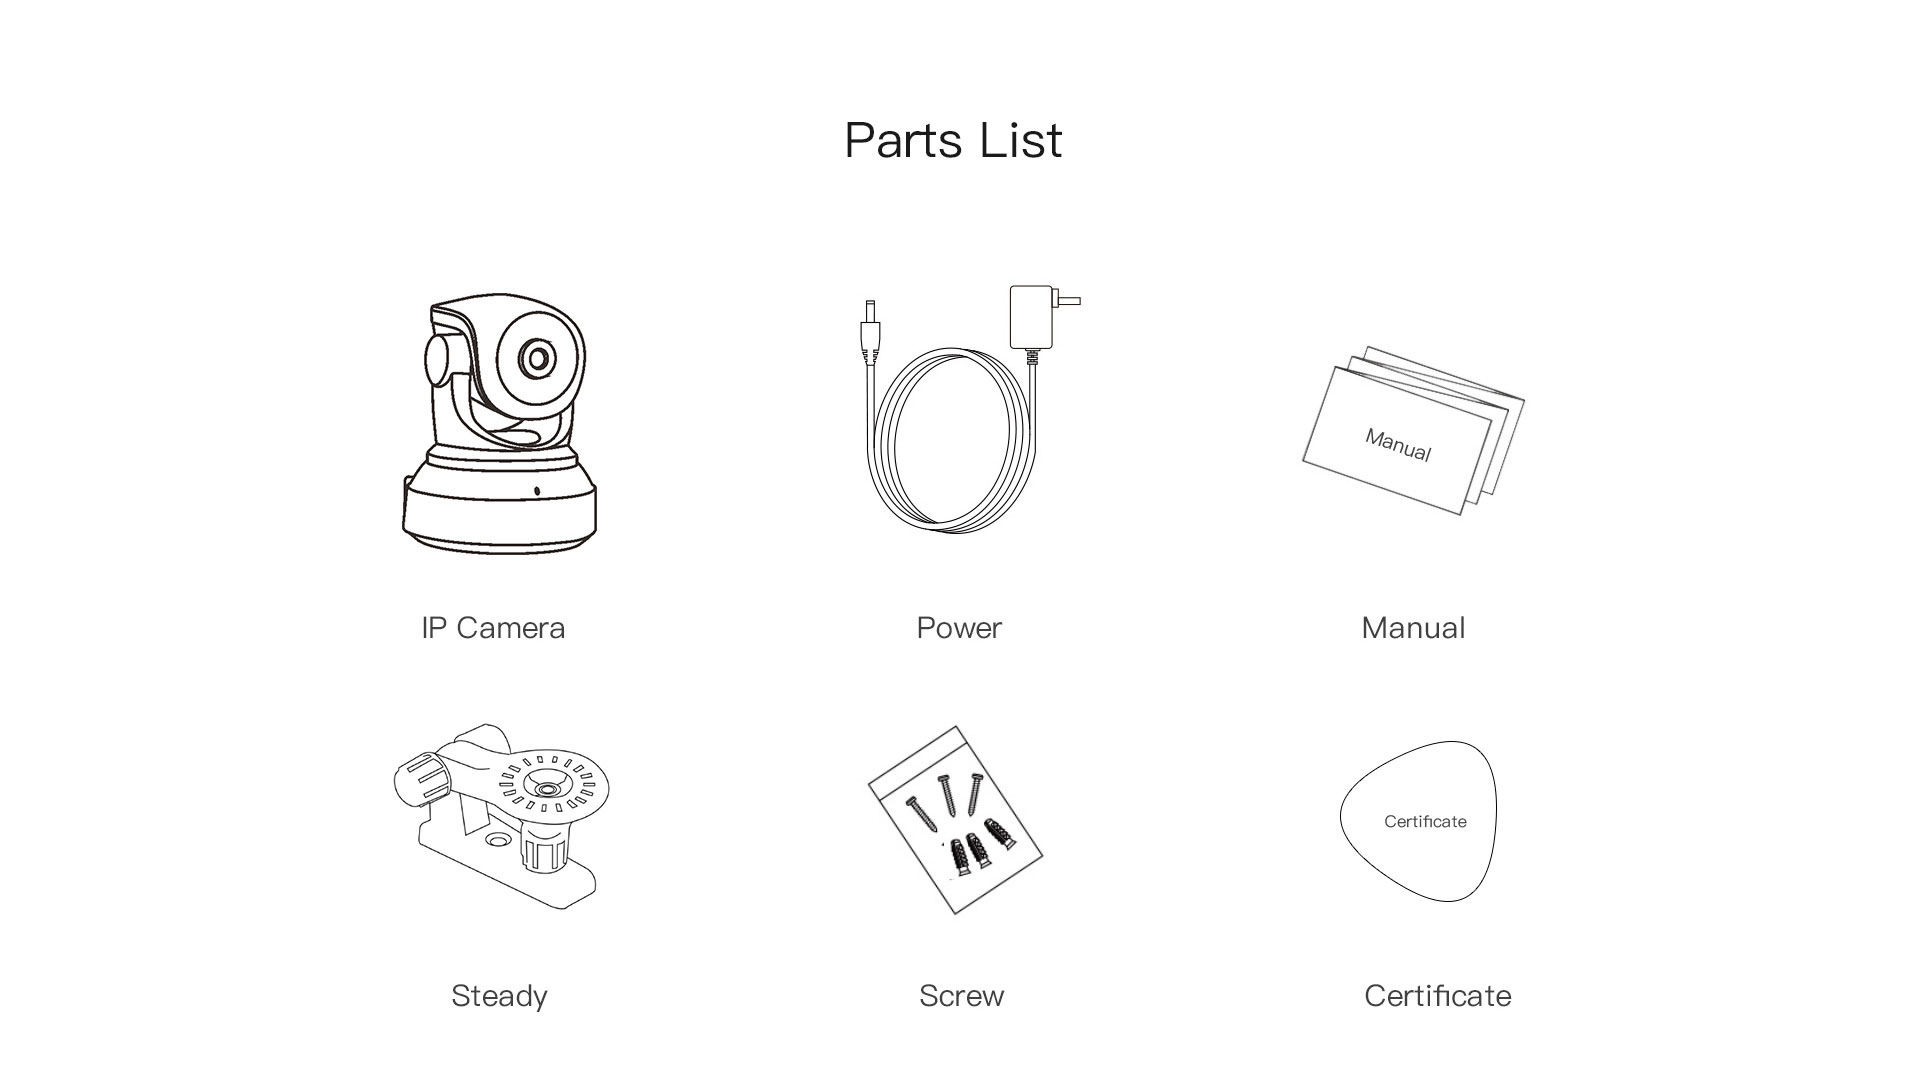 indoor security camera parts list